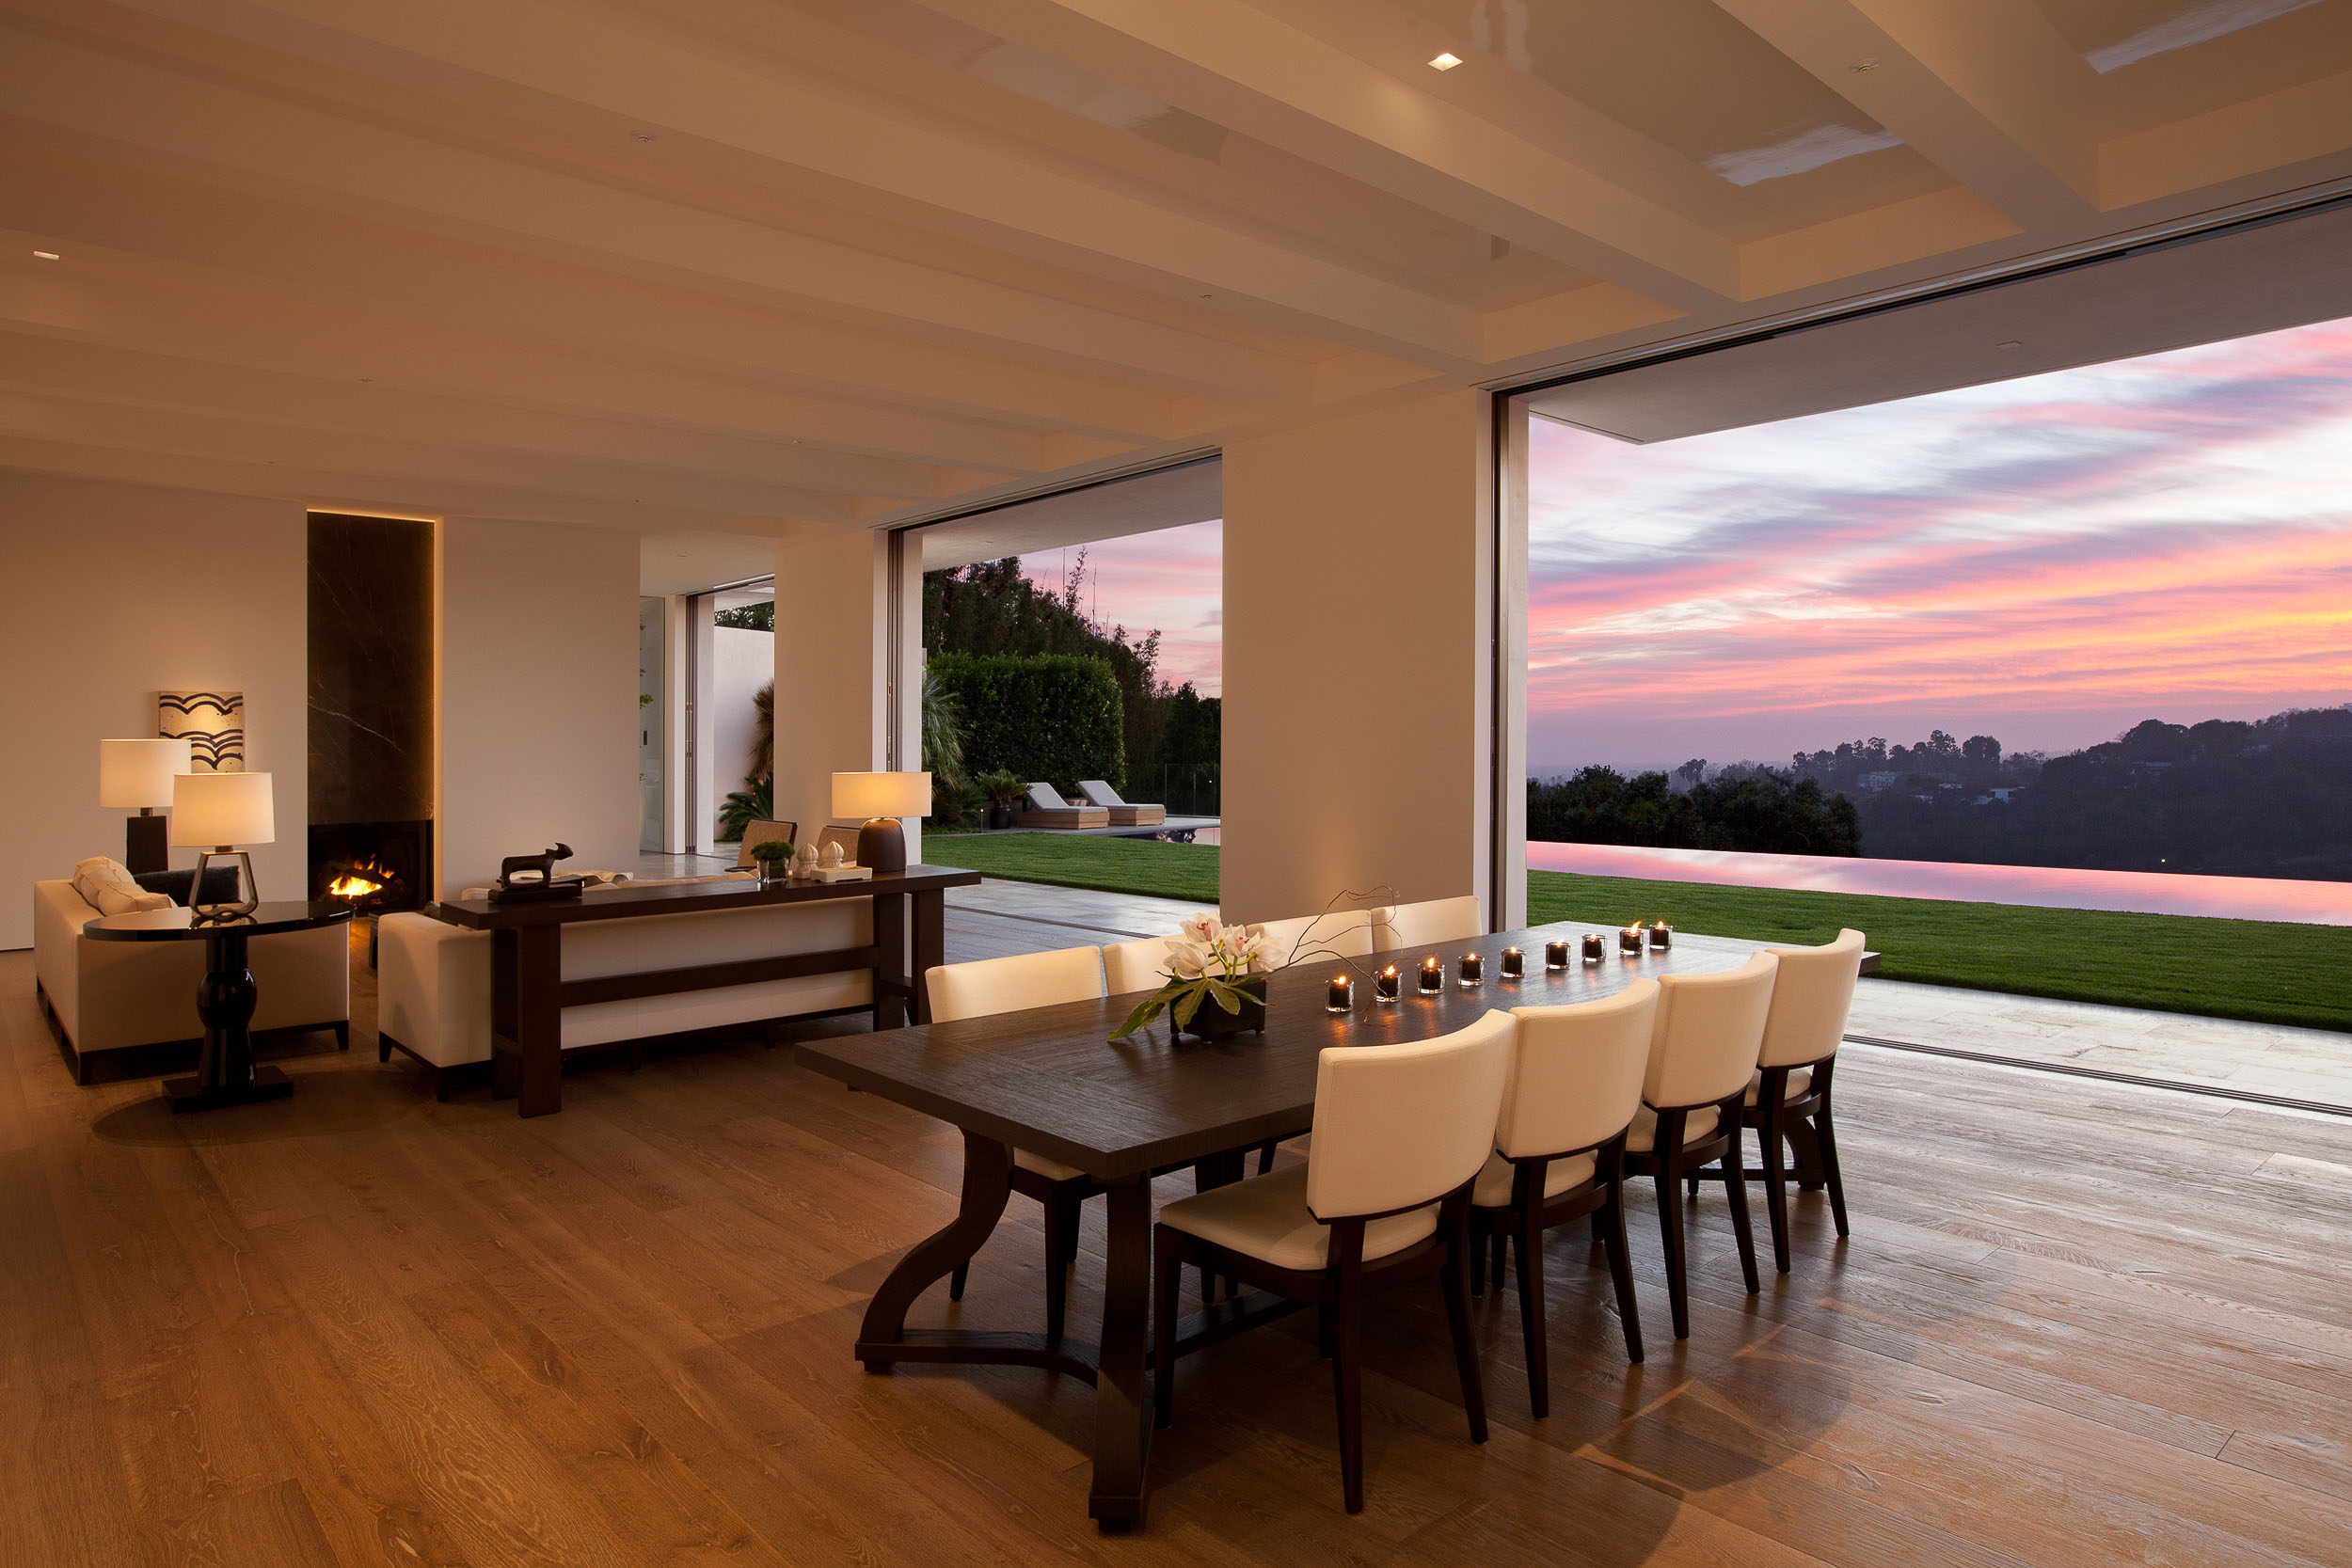 living room with open walls overlooking sunset